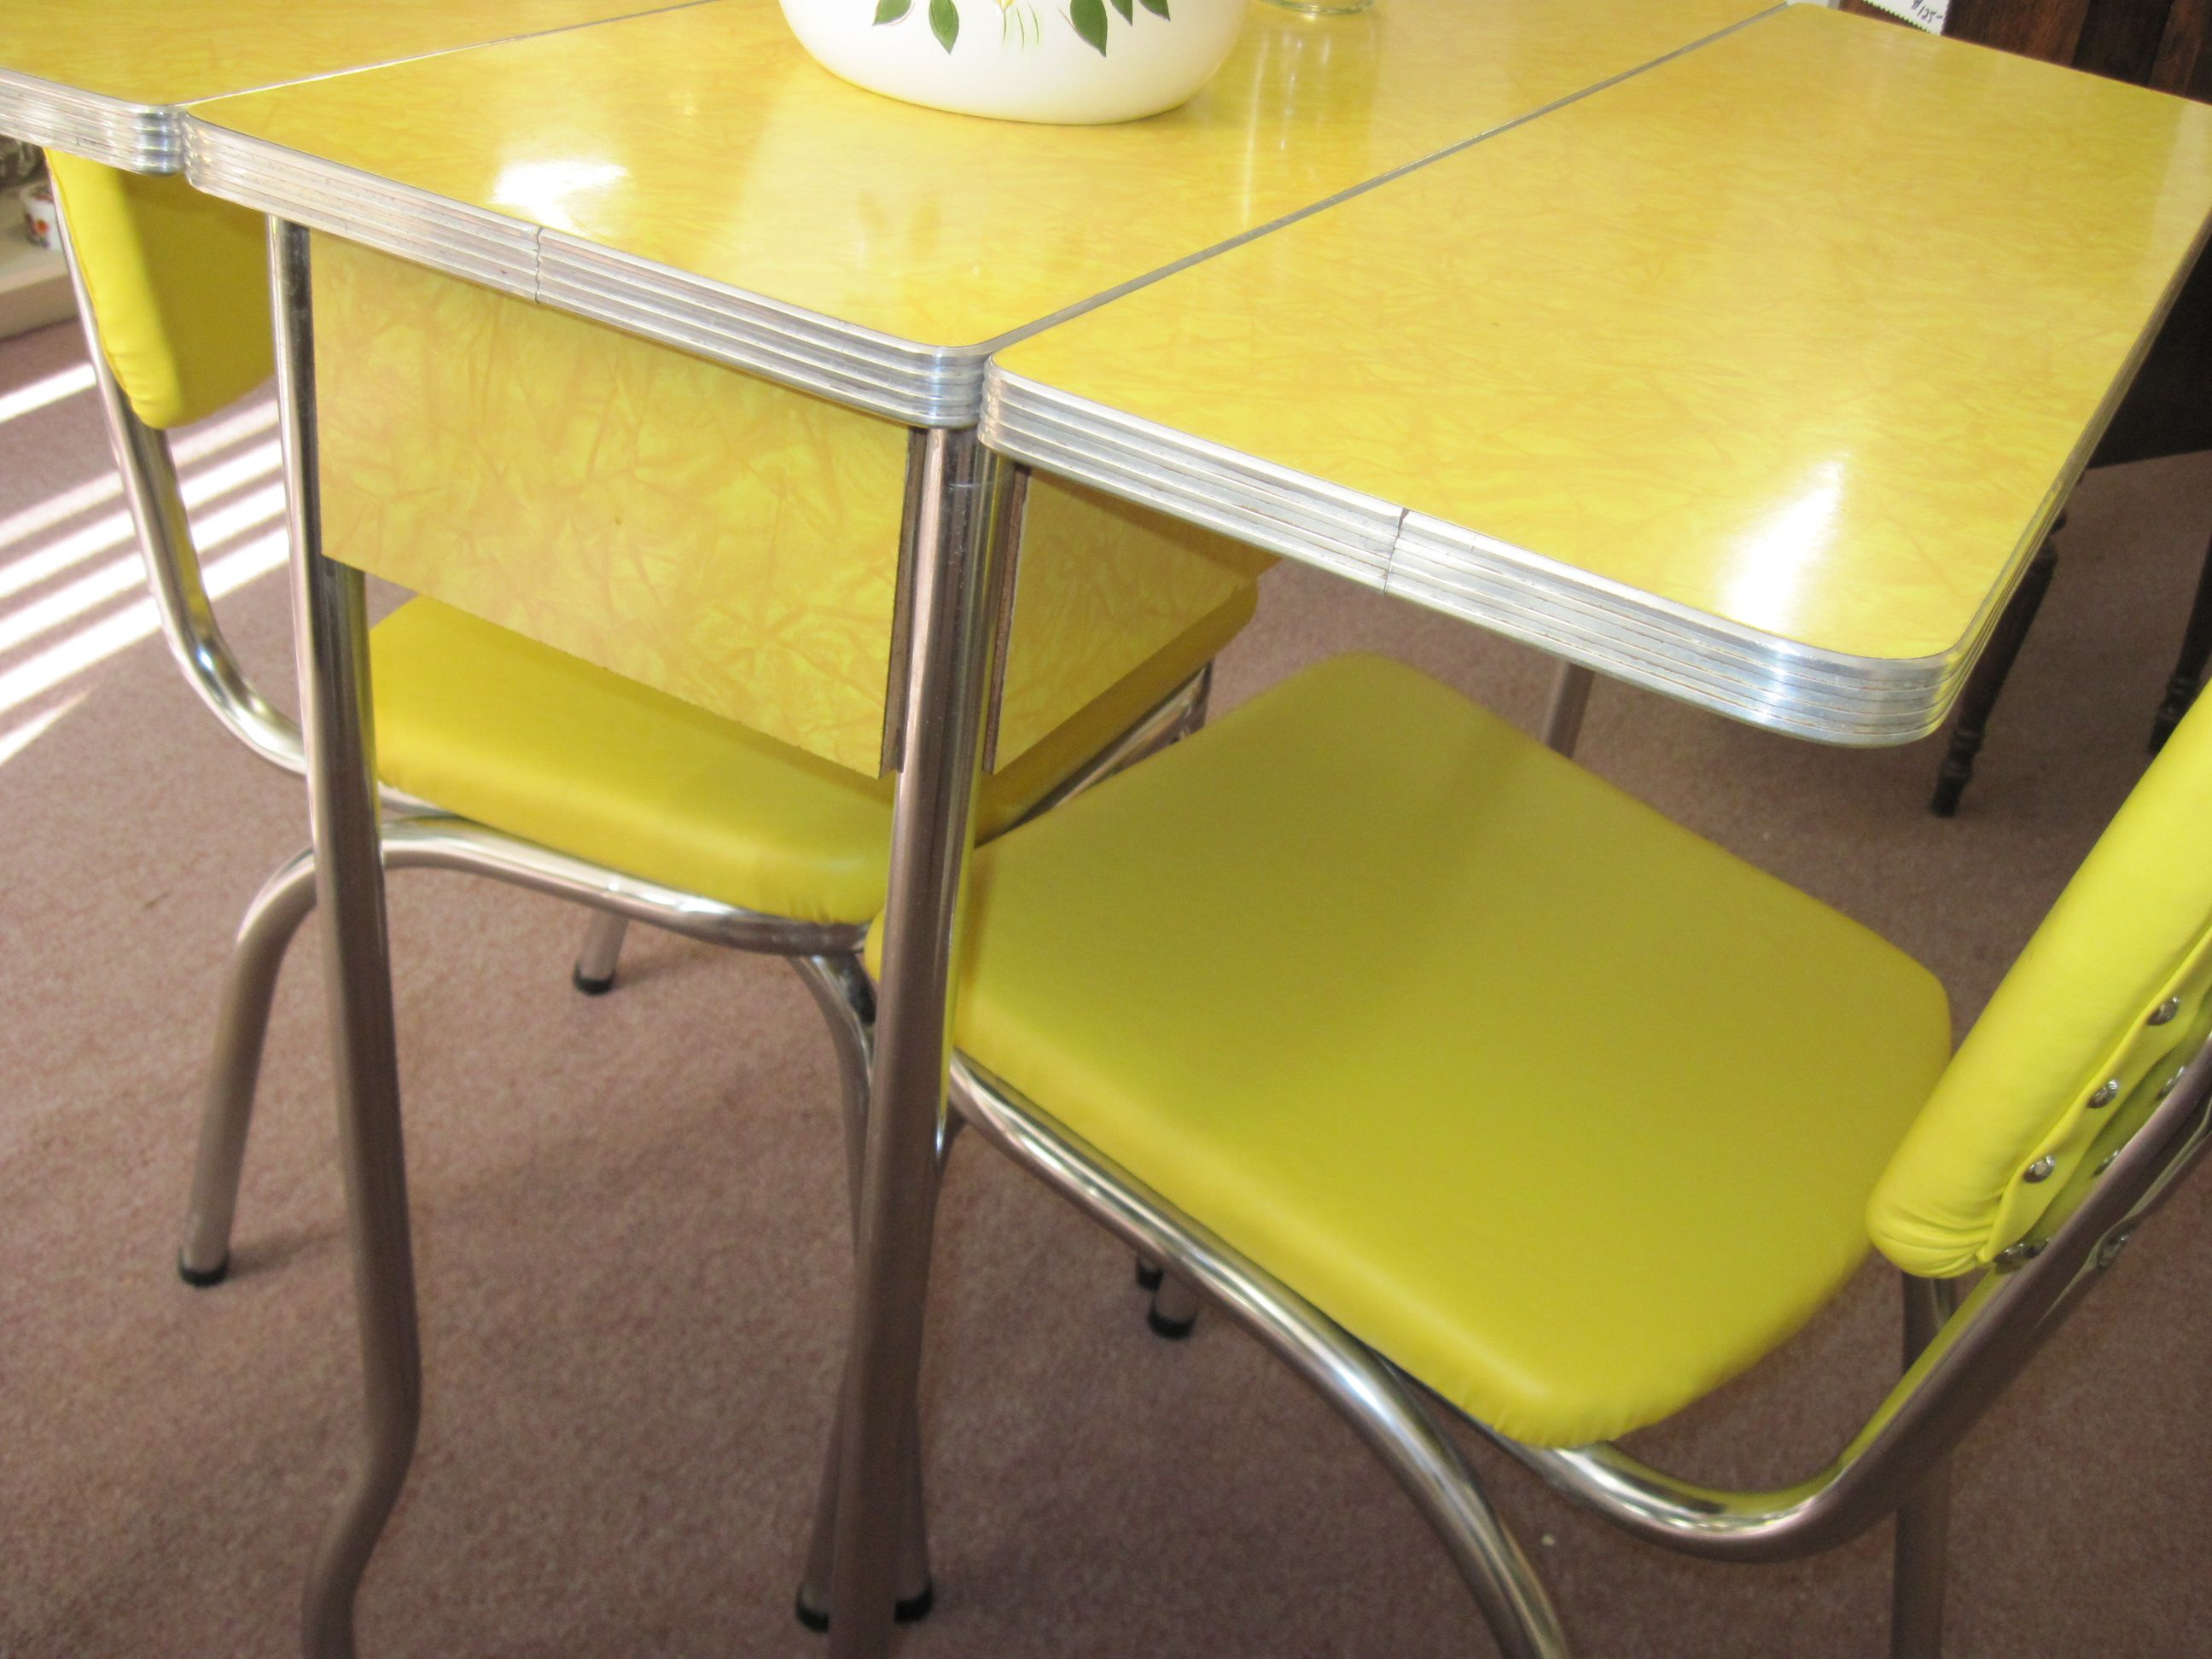 laminate kitchen table retro drop leaf kitchen tables and chairs Yellow s Cracked Ice Formica Table